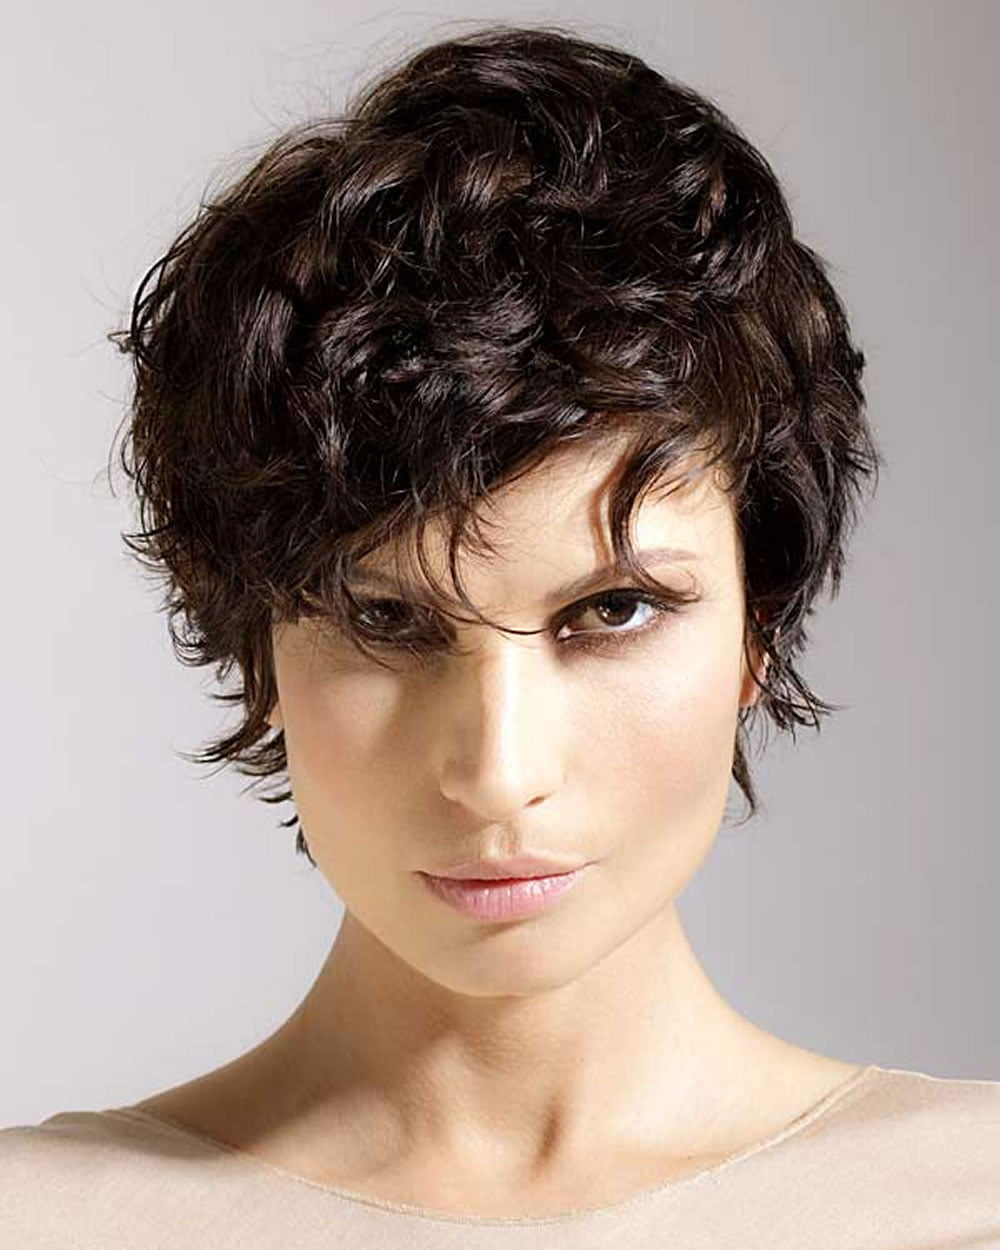 Curly Short Haircuts amazing hairstyle